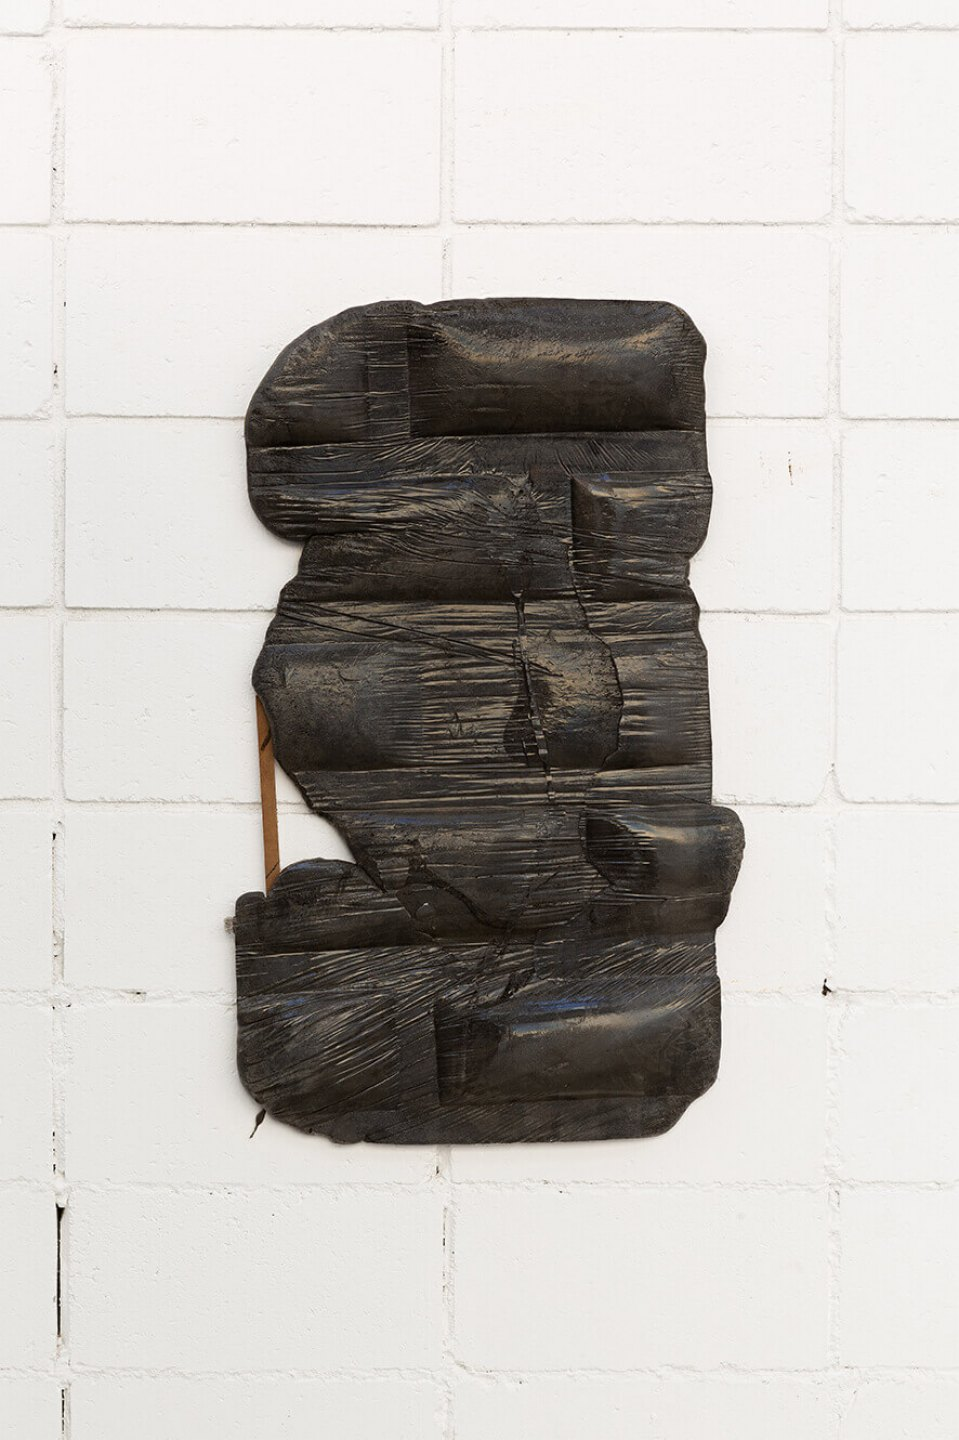 Neïl Beloufa,&nbsp;<em>Unframed dark archive, from Secured wall series</em>,&nbsp;2014, extensive foam, pigment and wood, 87 × 51 × 6 cm - Mendes Wood DM